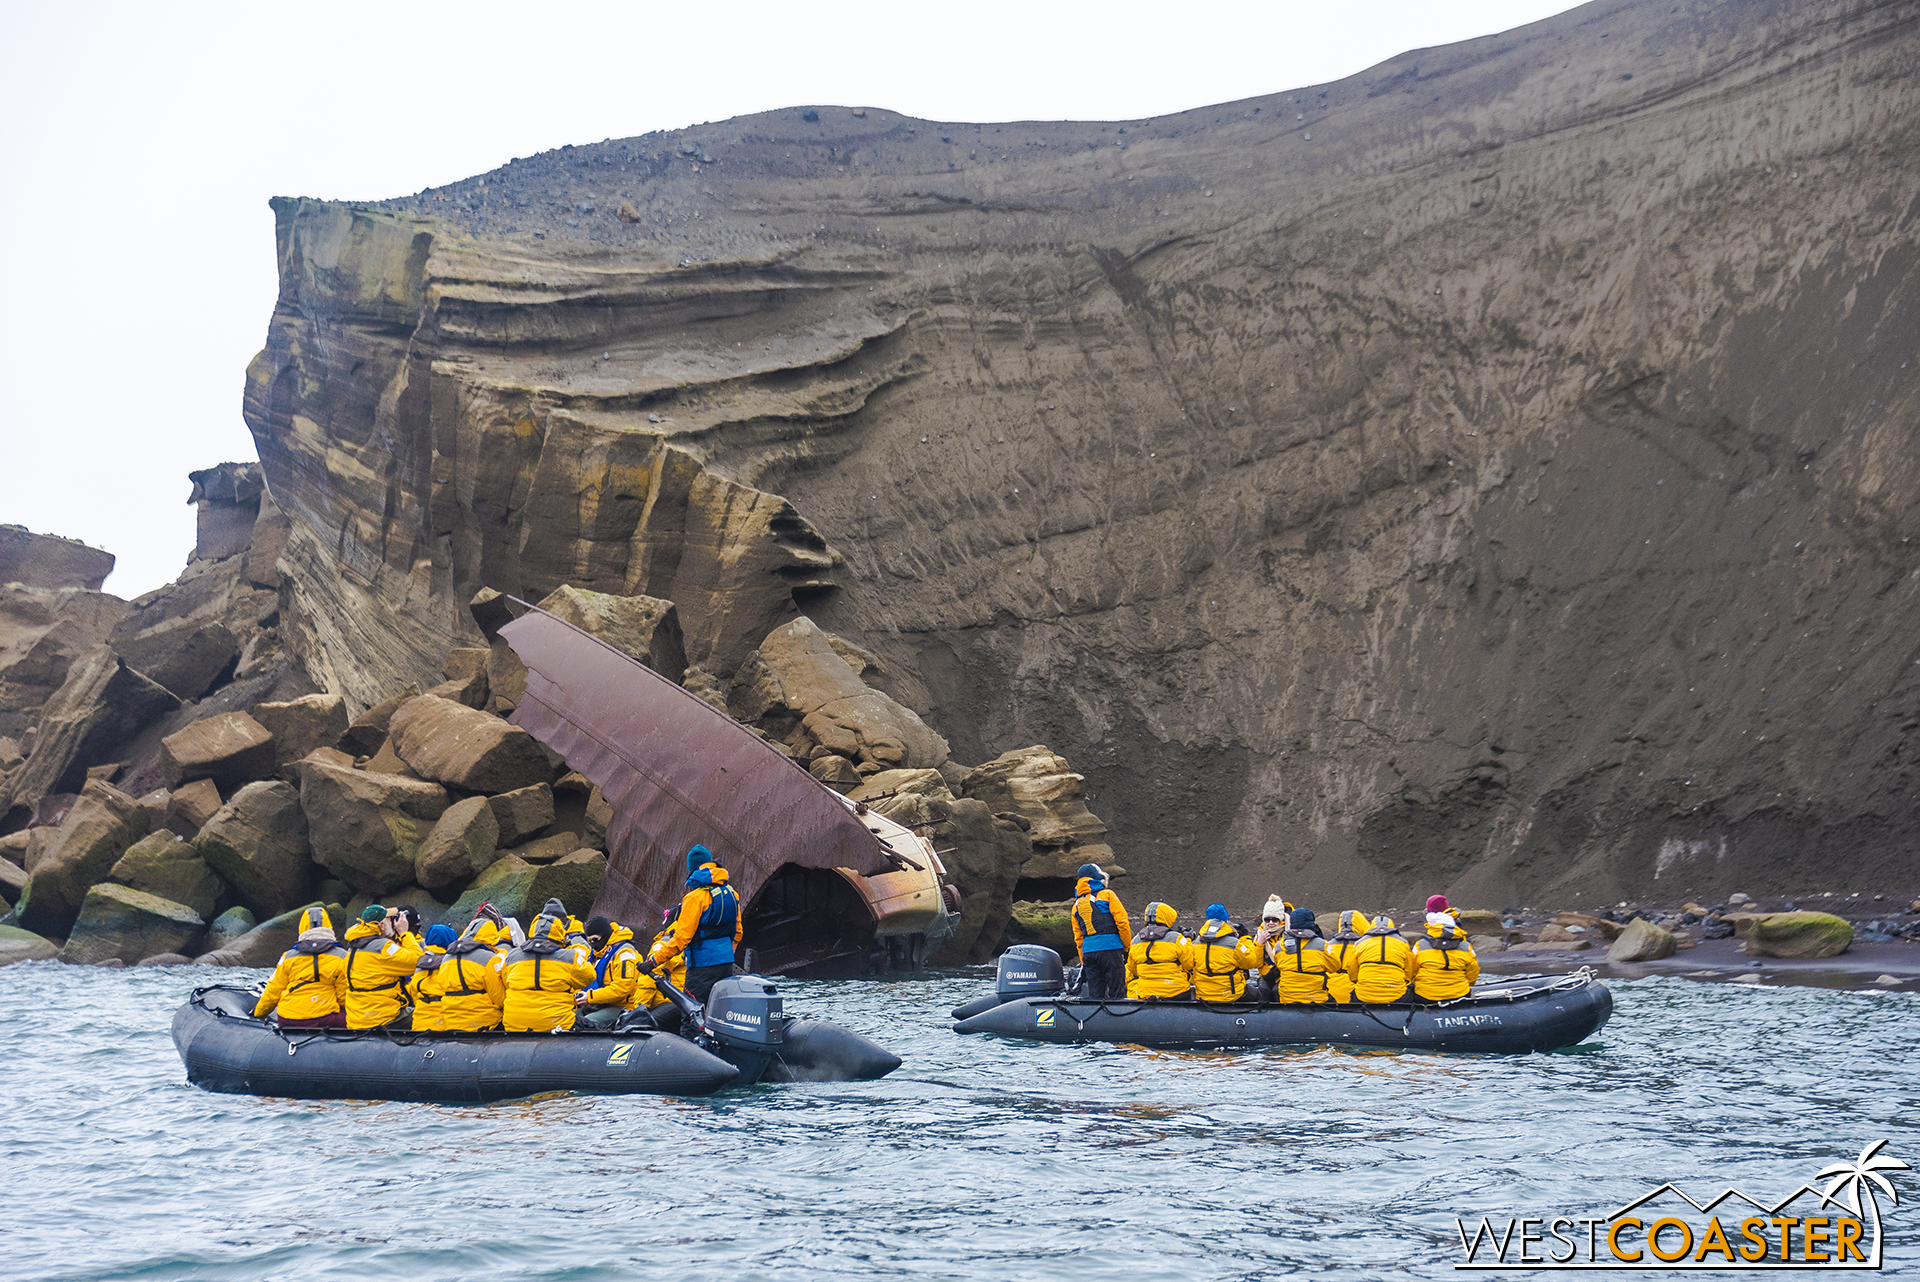 Two Zodiacs' worth of explorers check out the wreckage of an old ship.